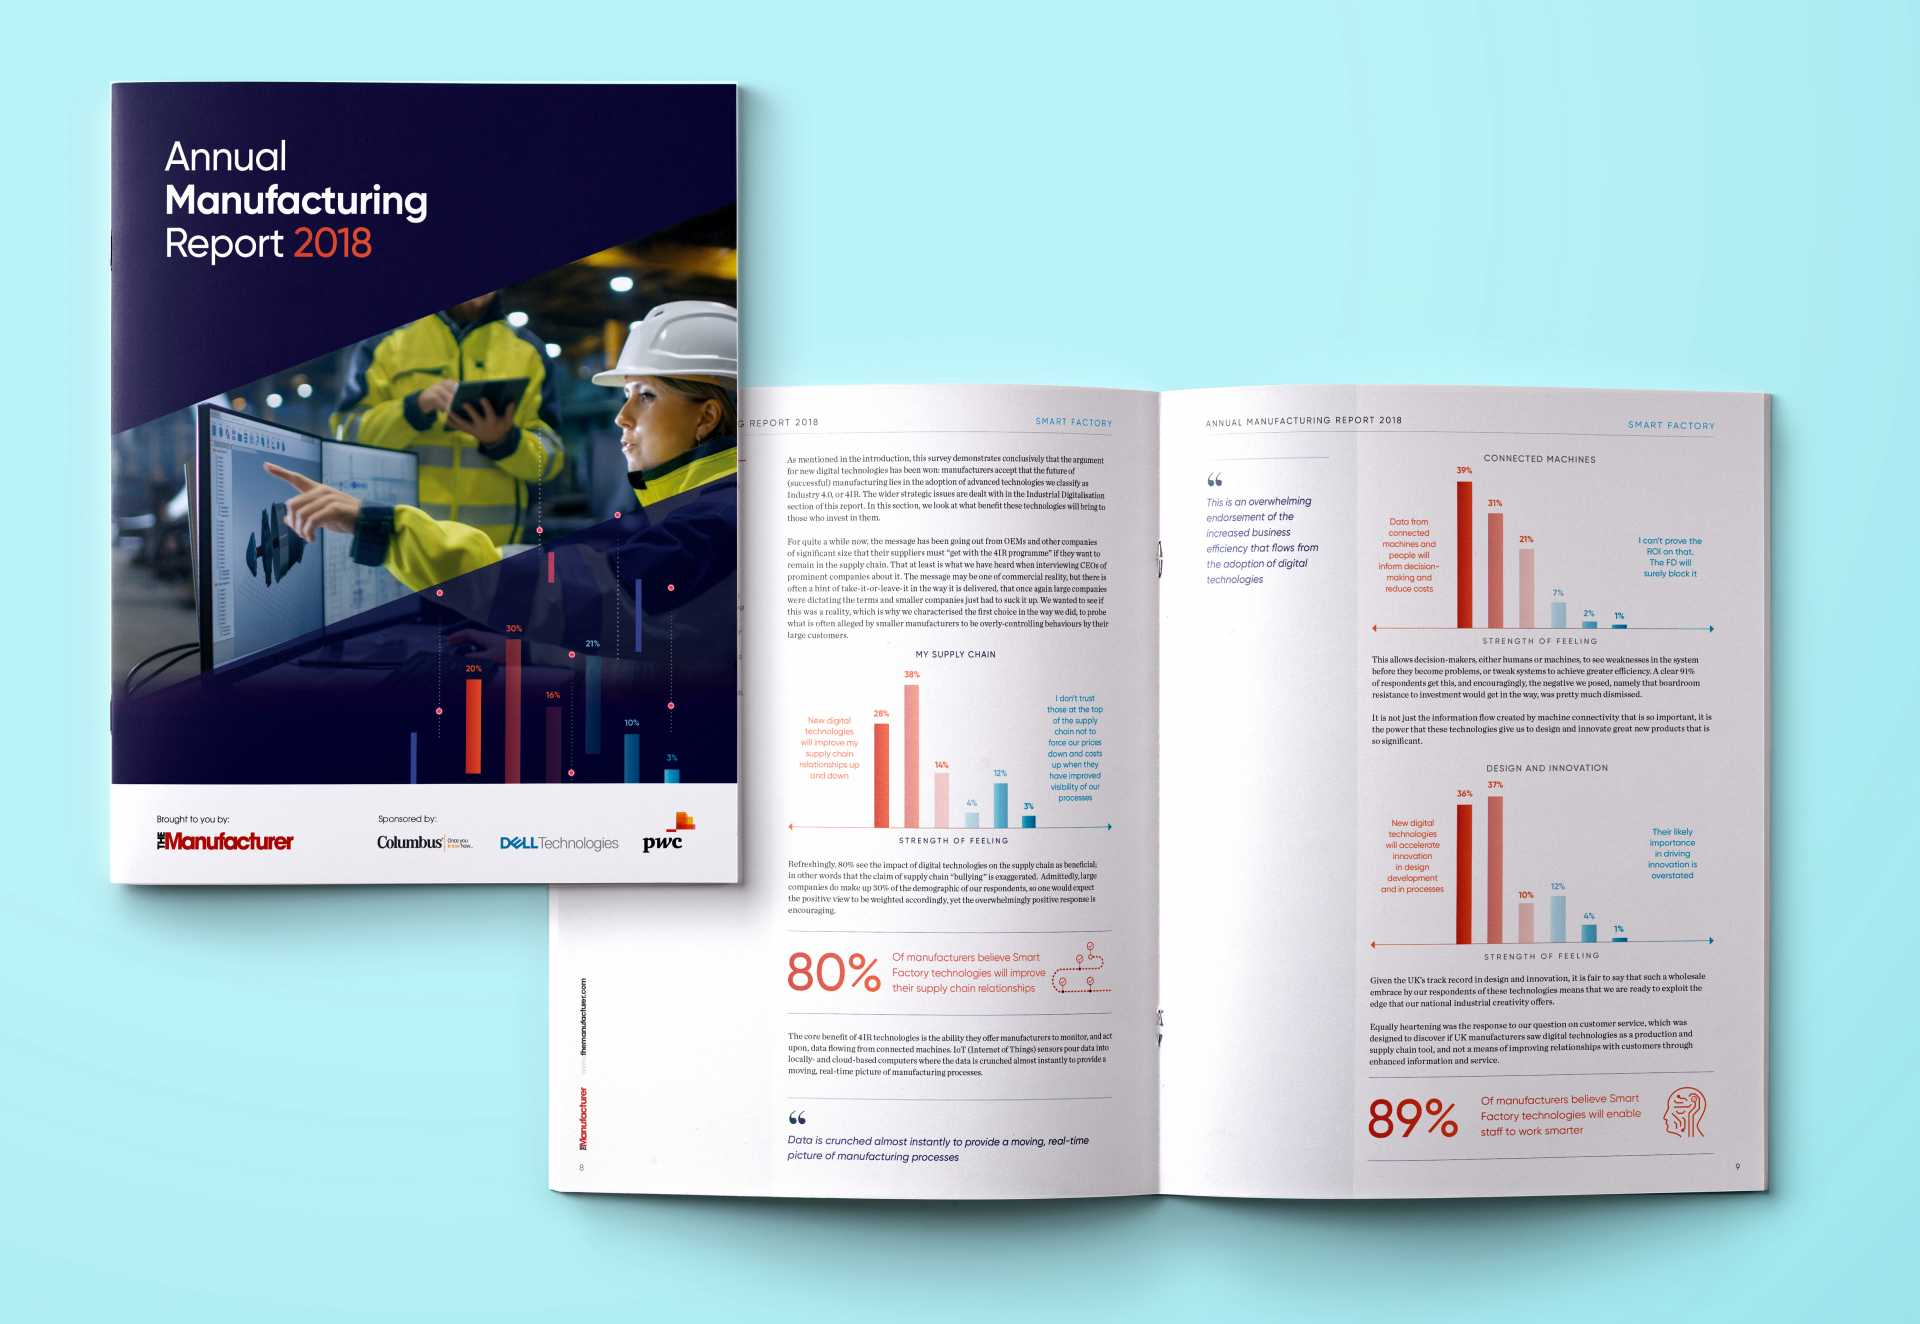 Annual Manufacturing Report AMR 2018 from The Manufacturer